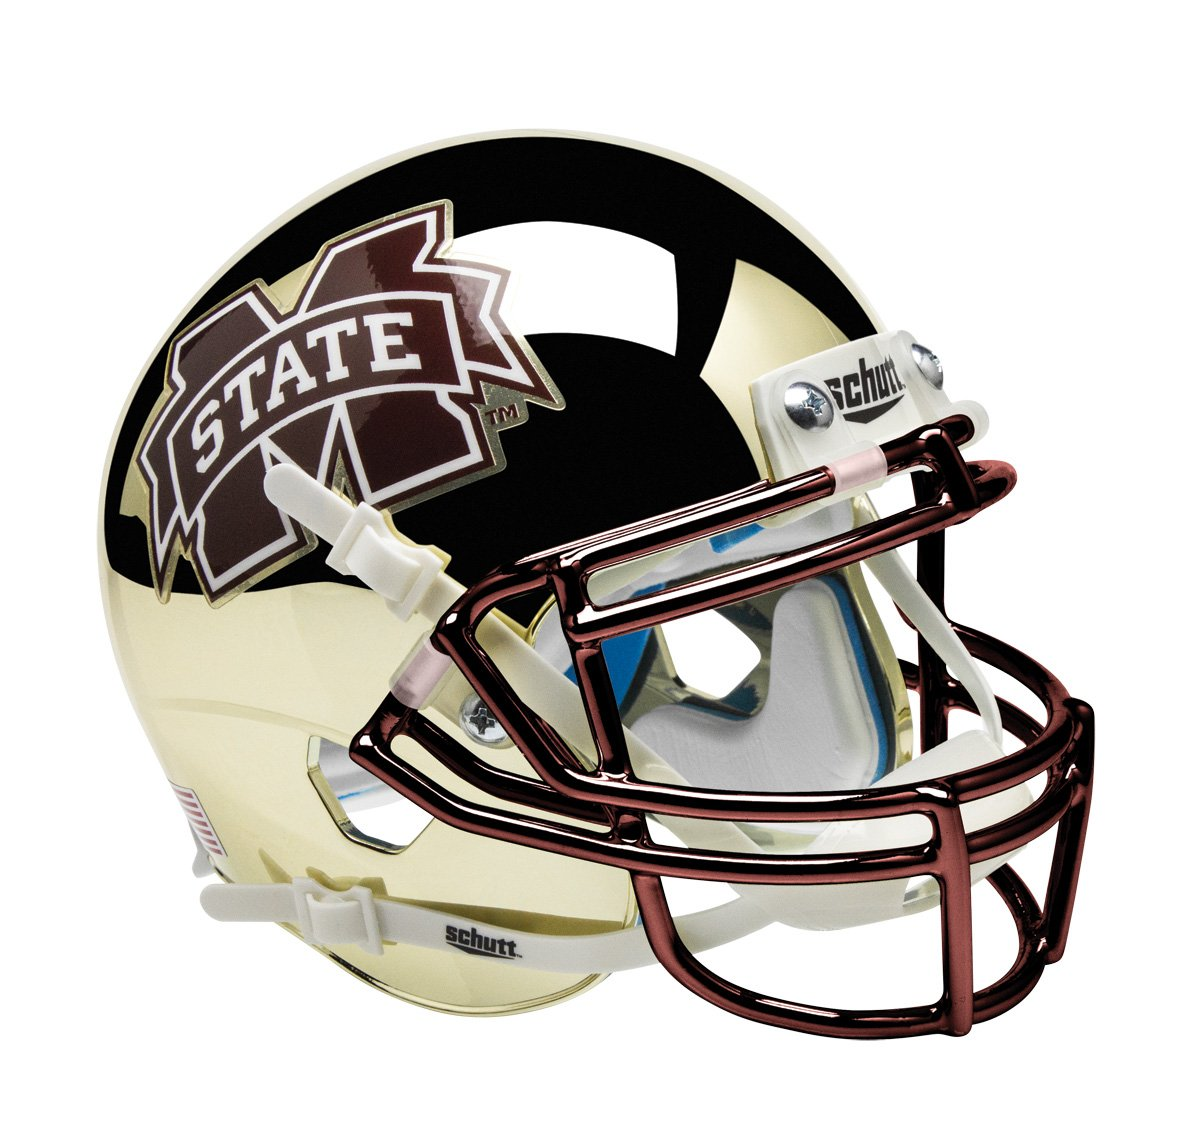 Schutt NCAA Mississippi State Bulldogs On-Field Authentic XP Football Helmet